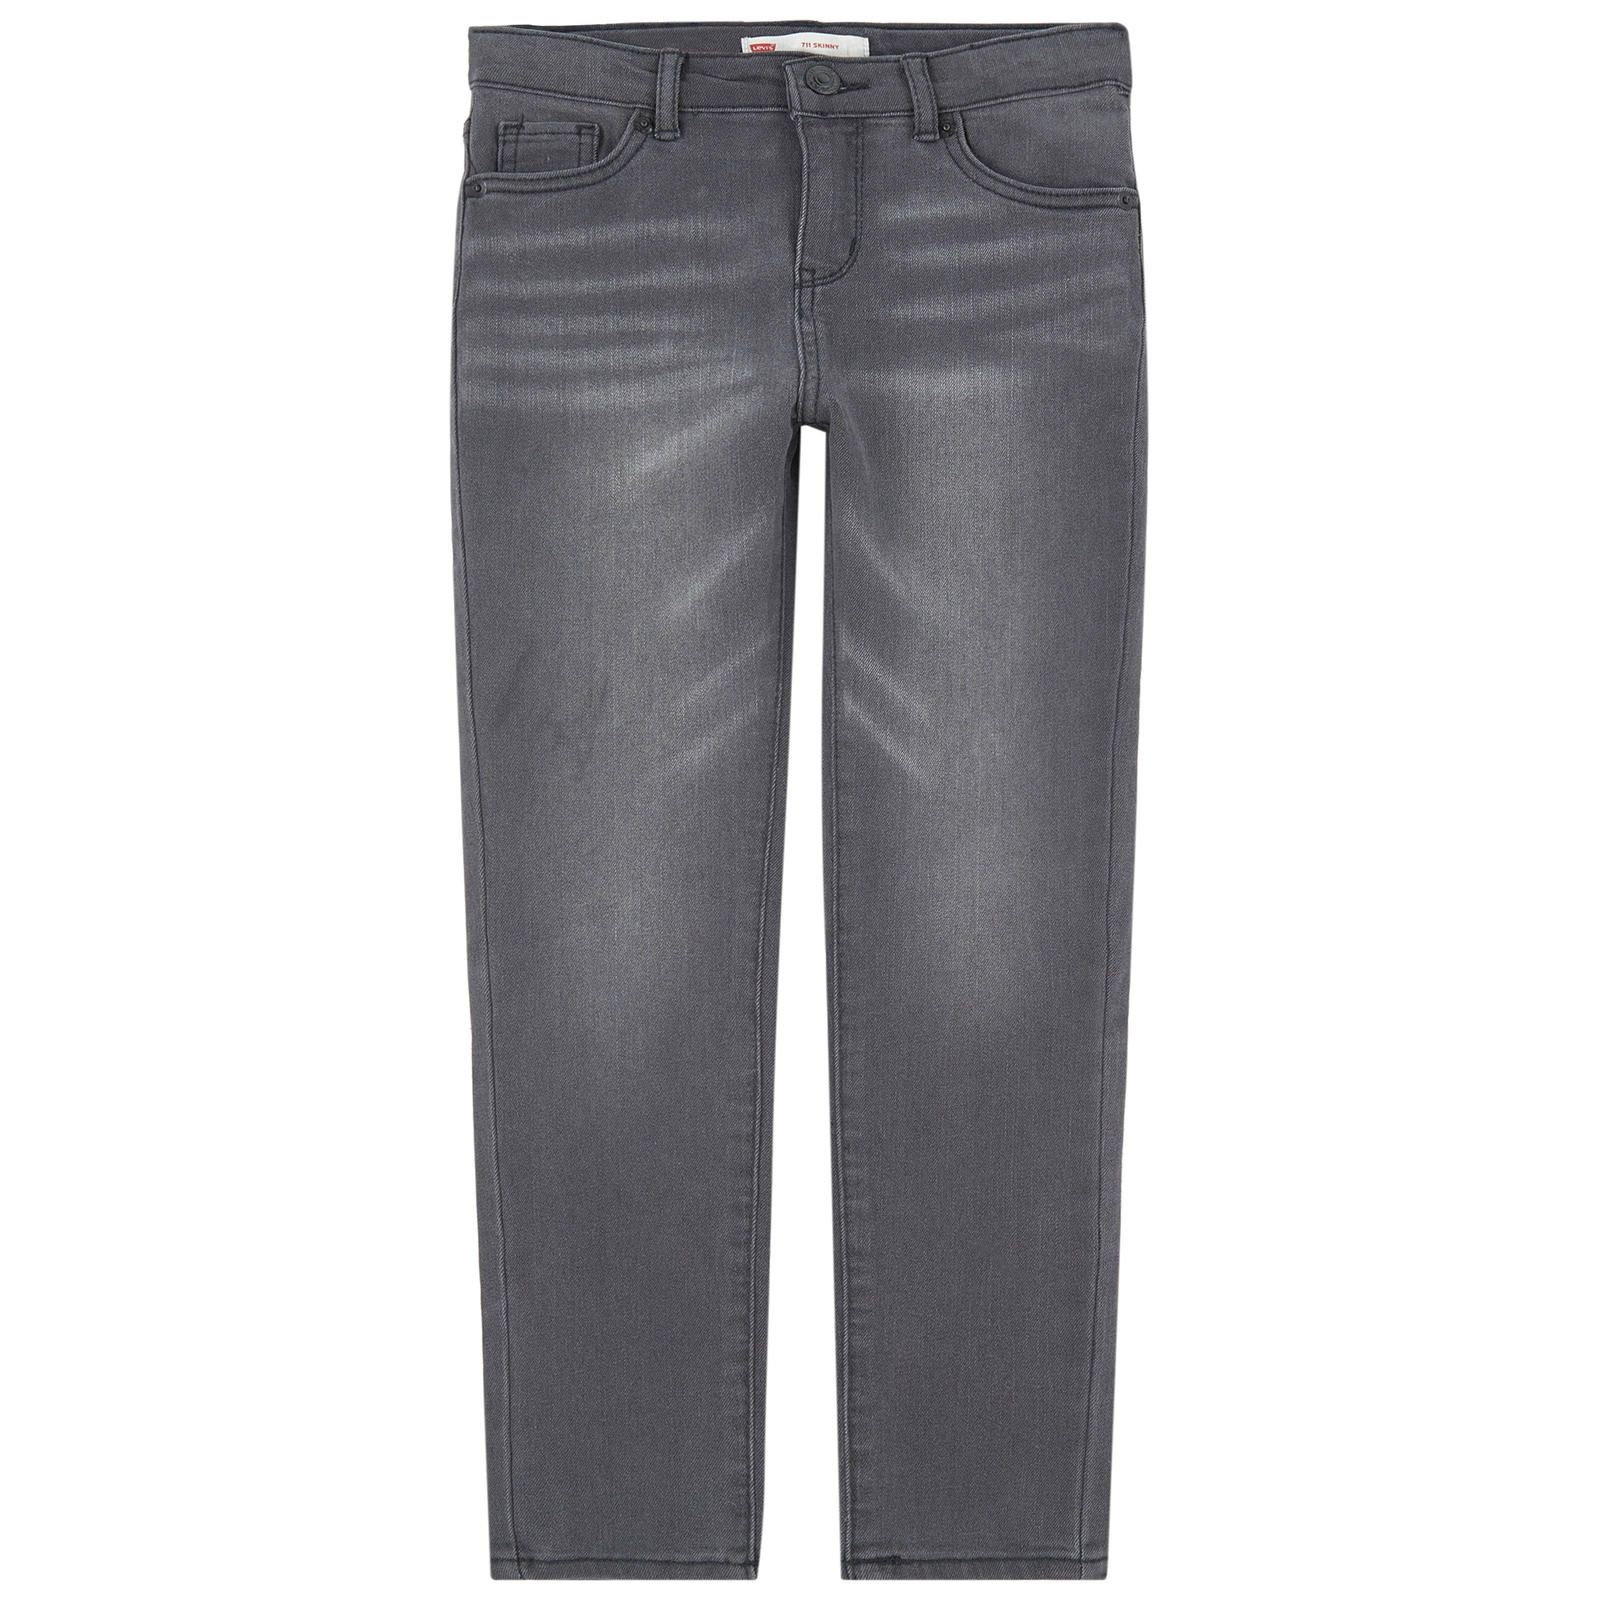 LEVIS jeans 711 skinny fit-4